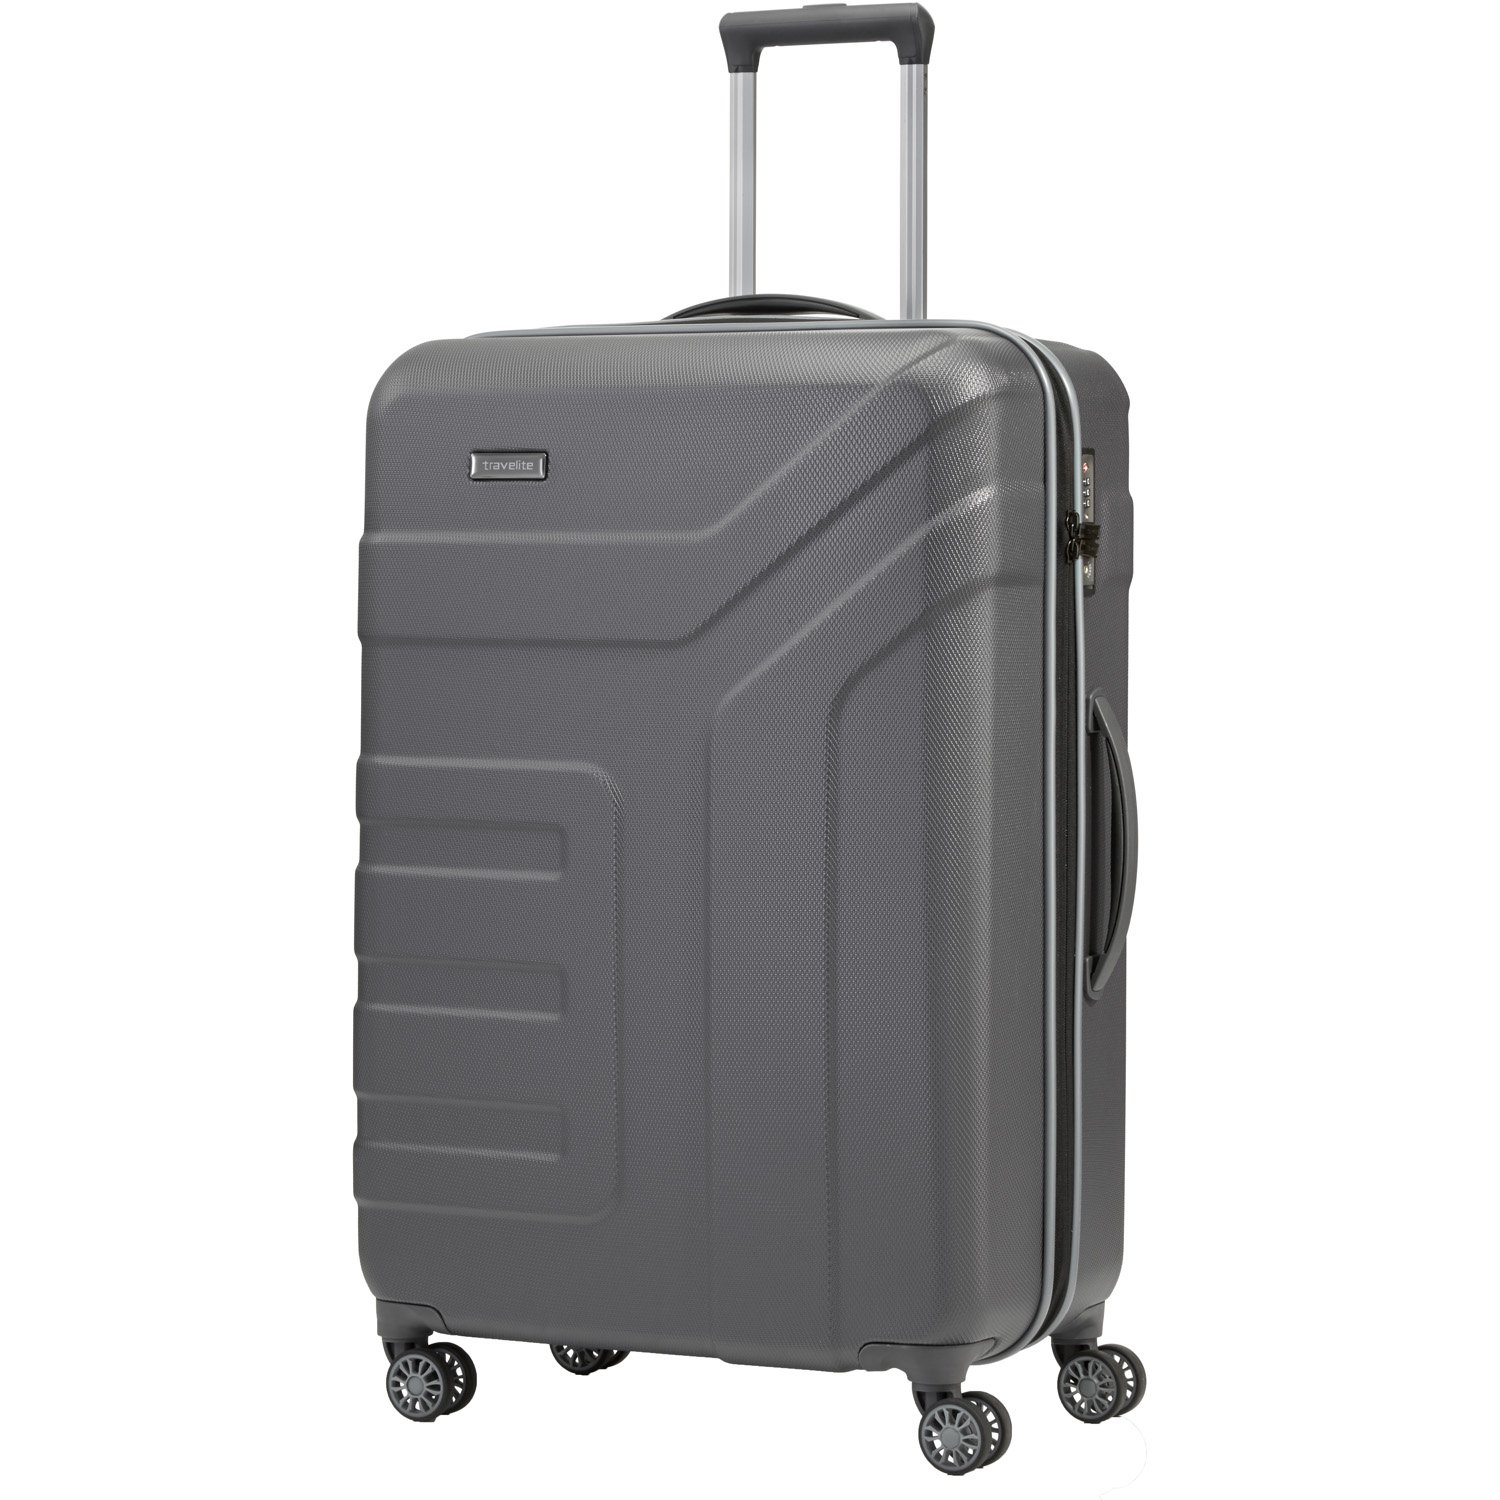 Travelite Trolley Vector with 4 wheels Size L in brown Valise, 77 cm, 103 liters, Marron (Brown)